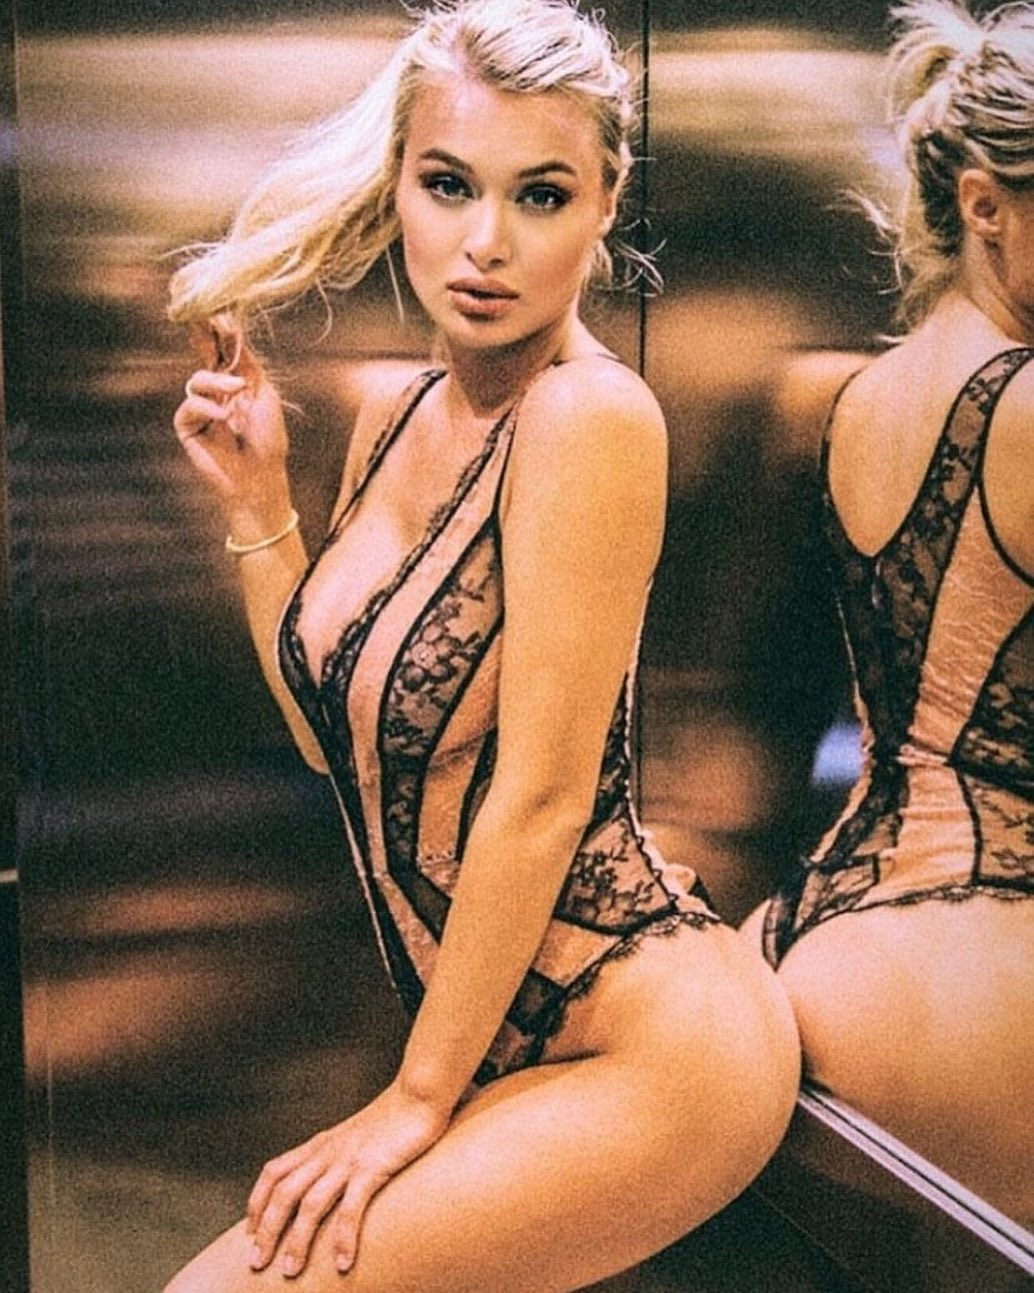 adult entertainment actor natalia starr says she's looking for a boyfriend